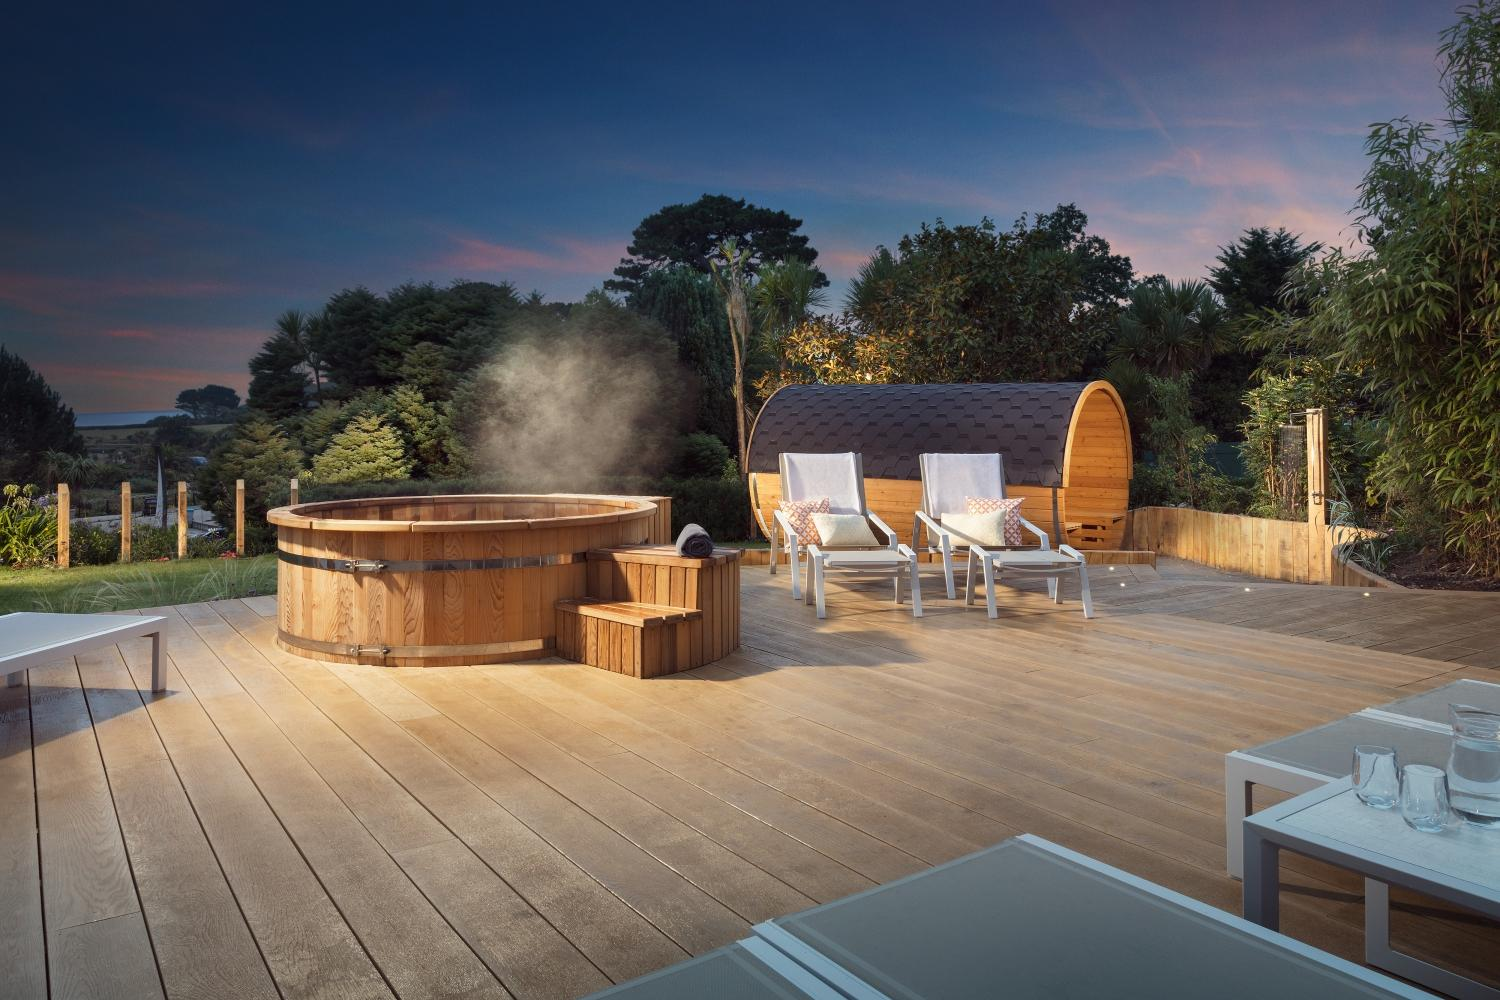 Outdoor facilities include a sun deck, a barrel sauna offering sea views and a red cedar-wood hot tub